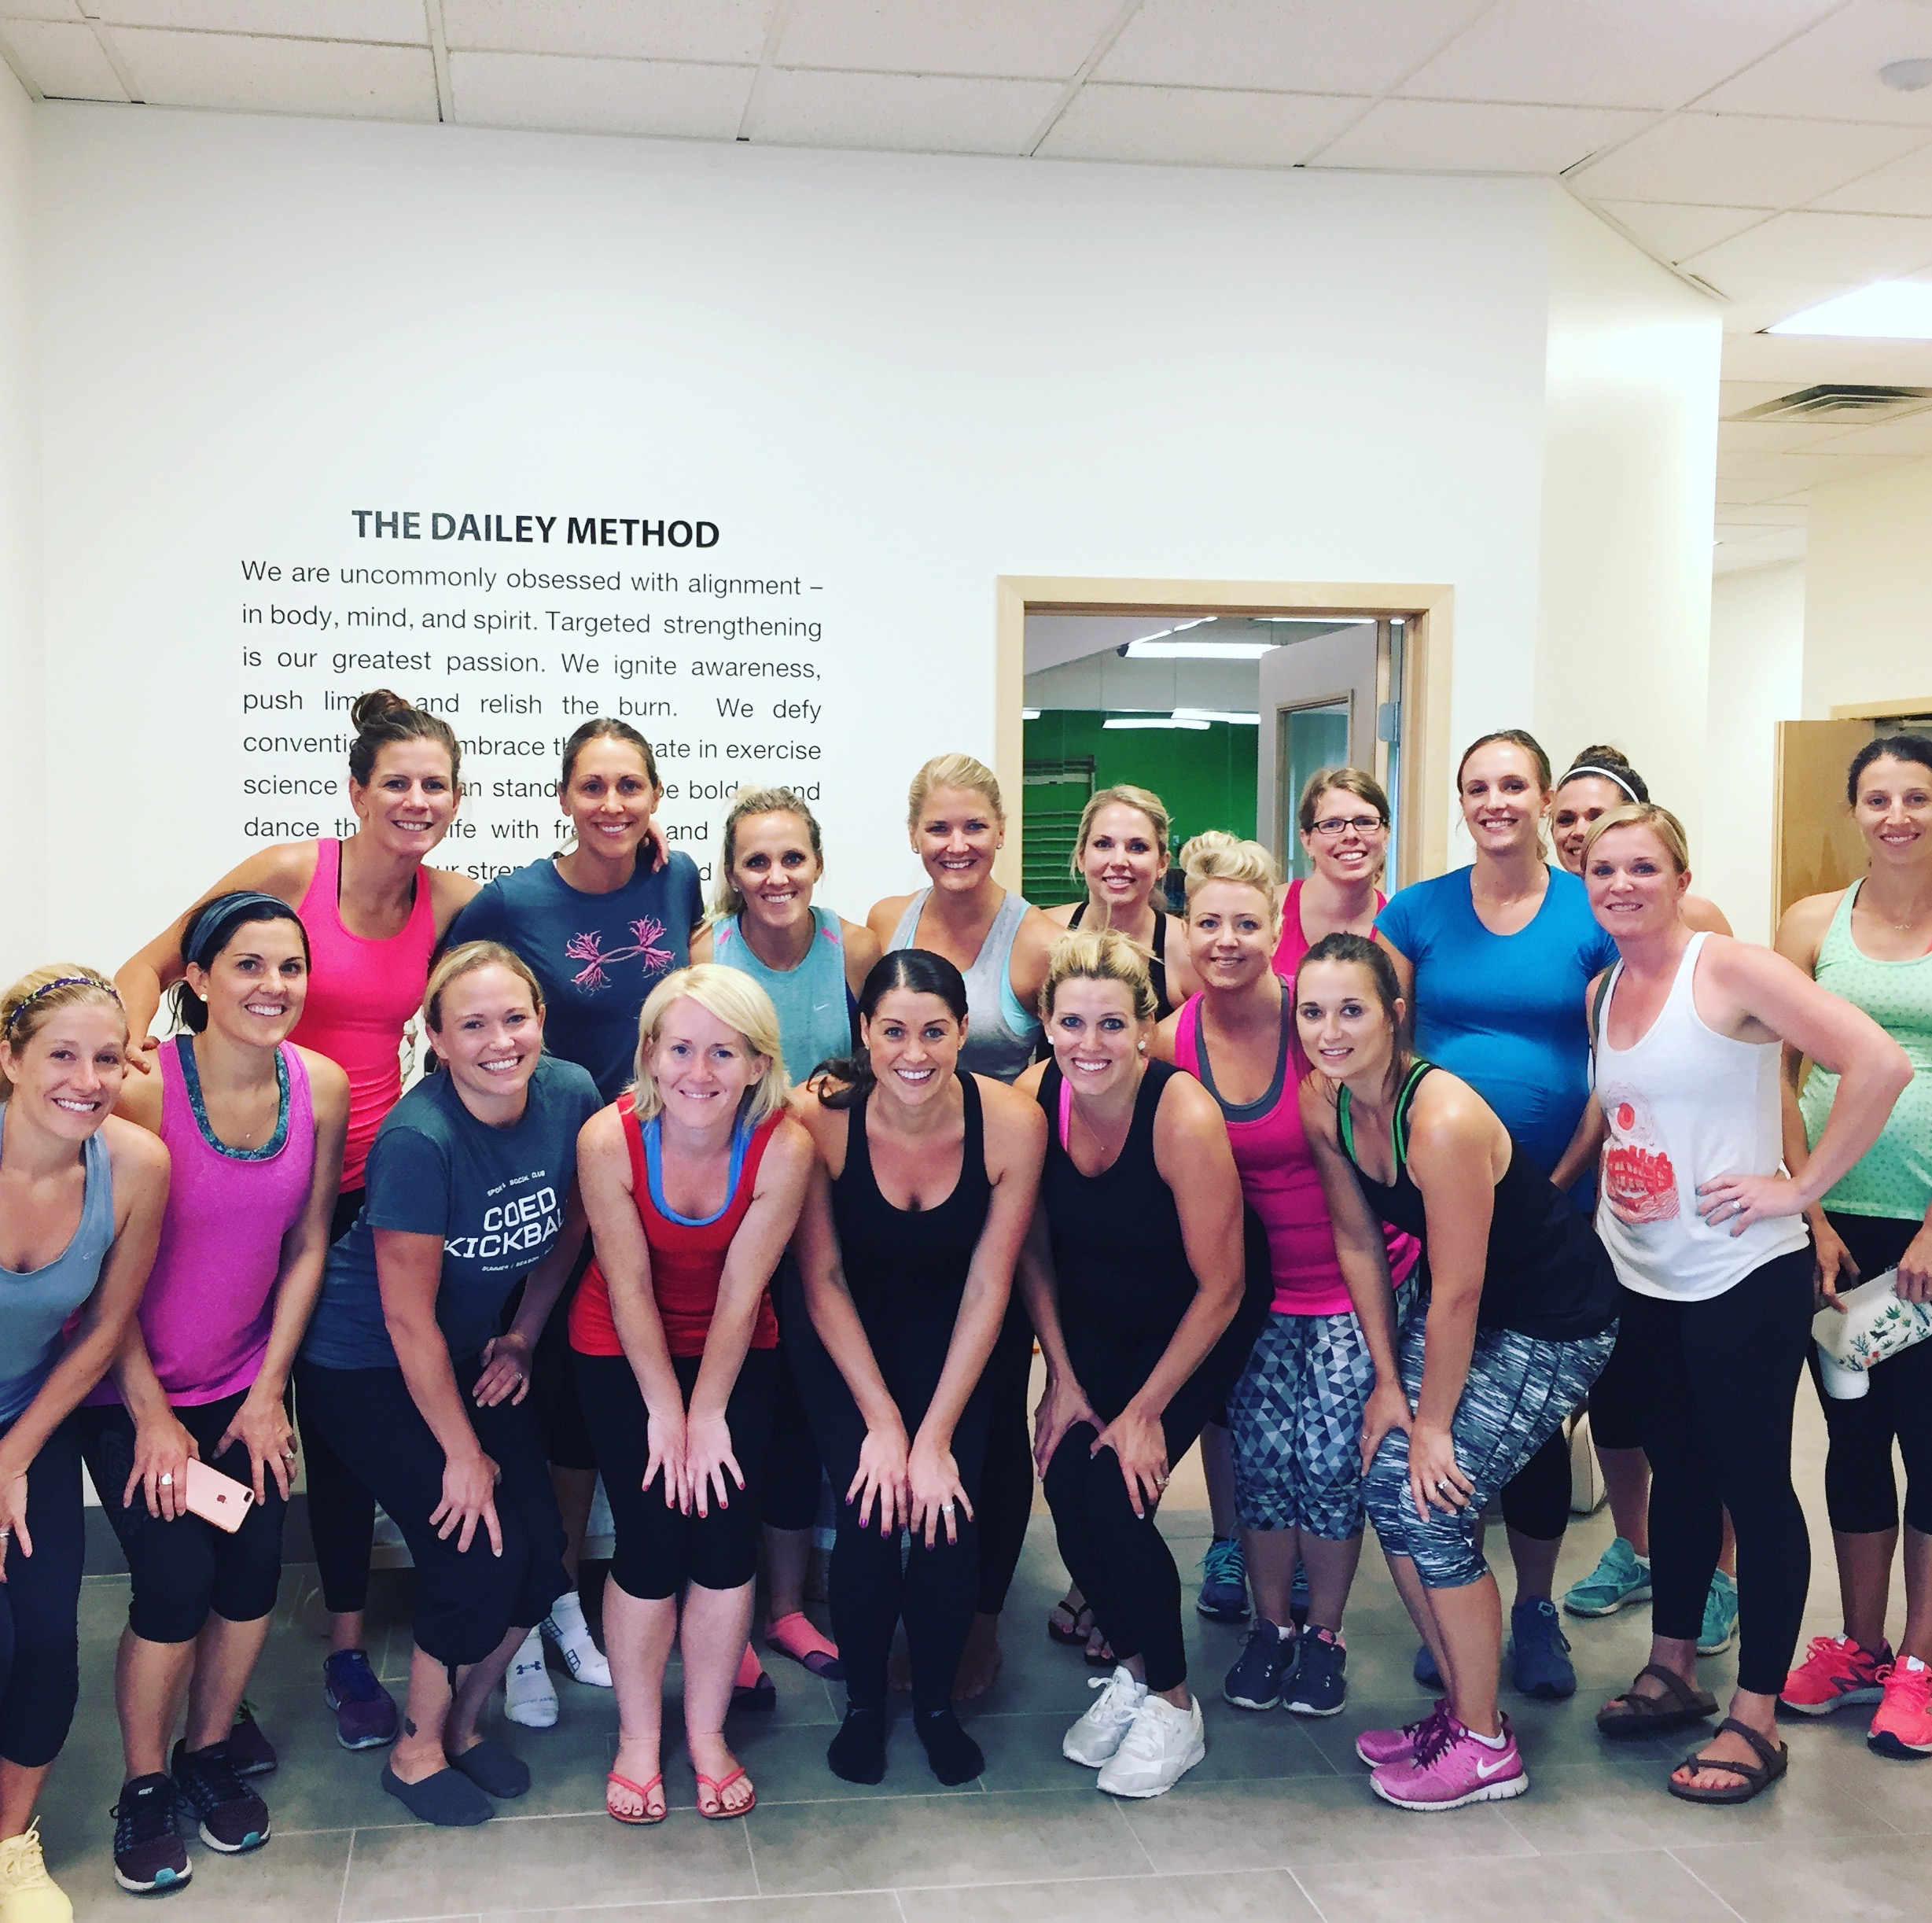 All my pretty friends who showed up for a super muscle busting barre class with me!